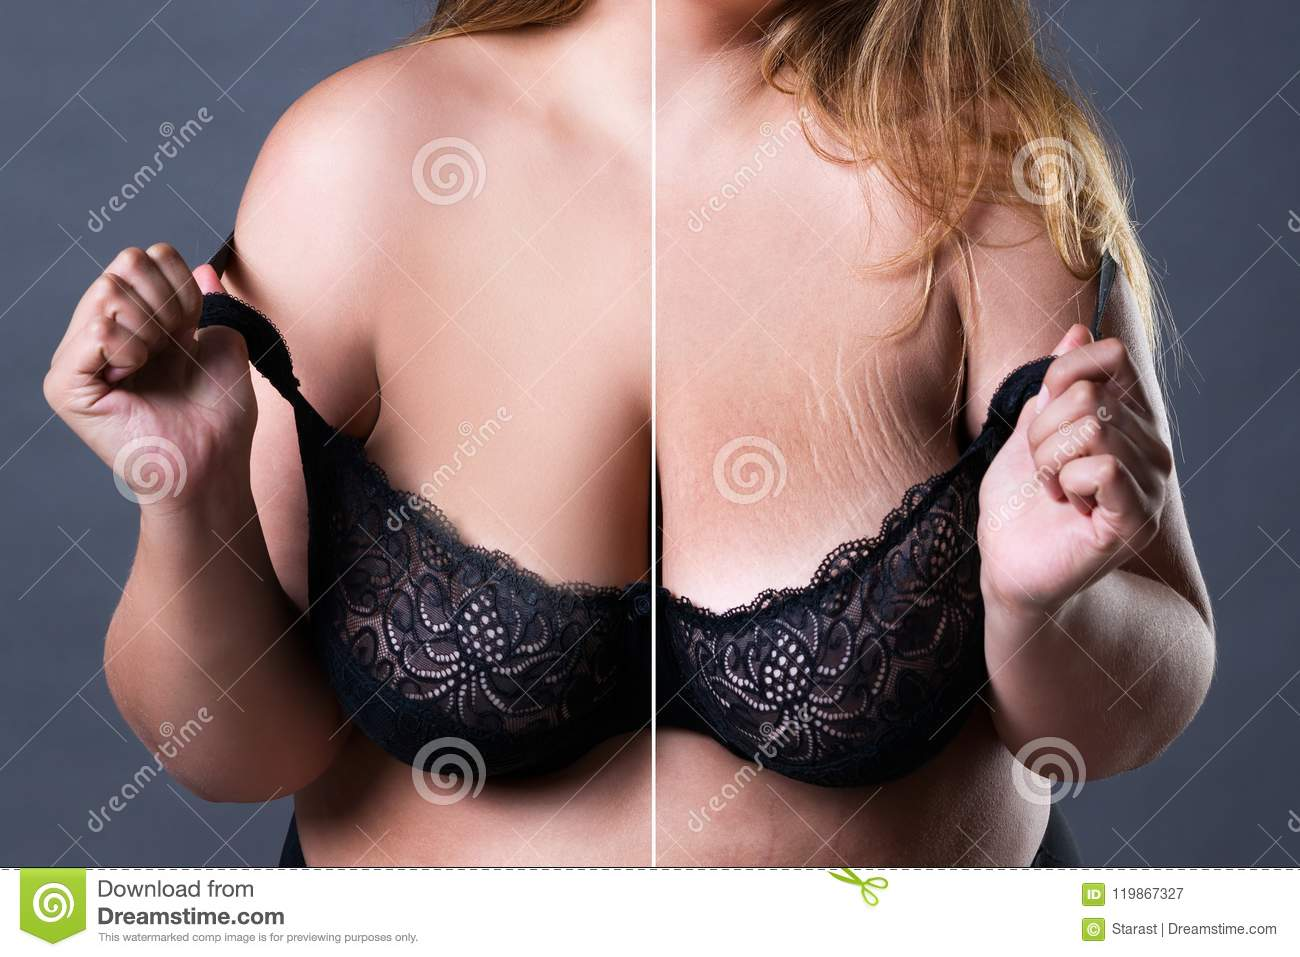 Stretch marks on a large natural breasts, obese woman with big boobs,  overweight female